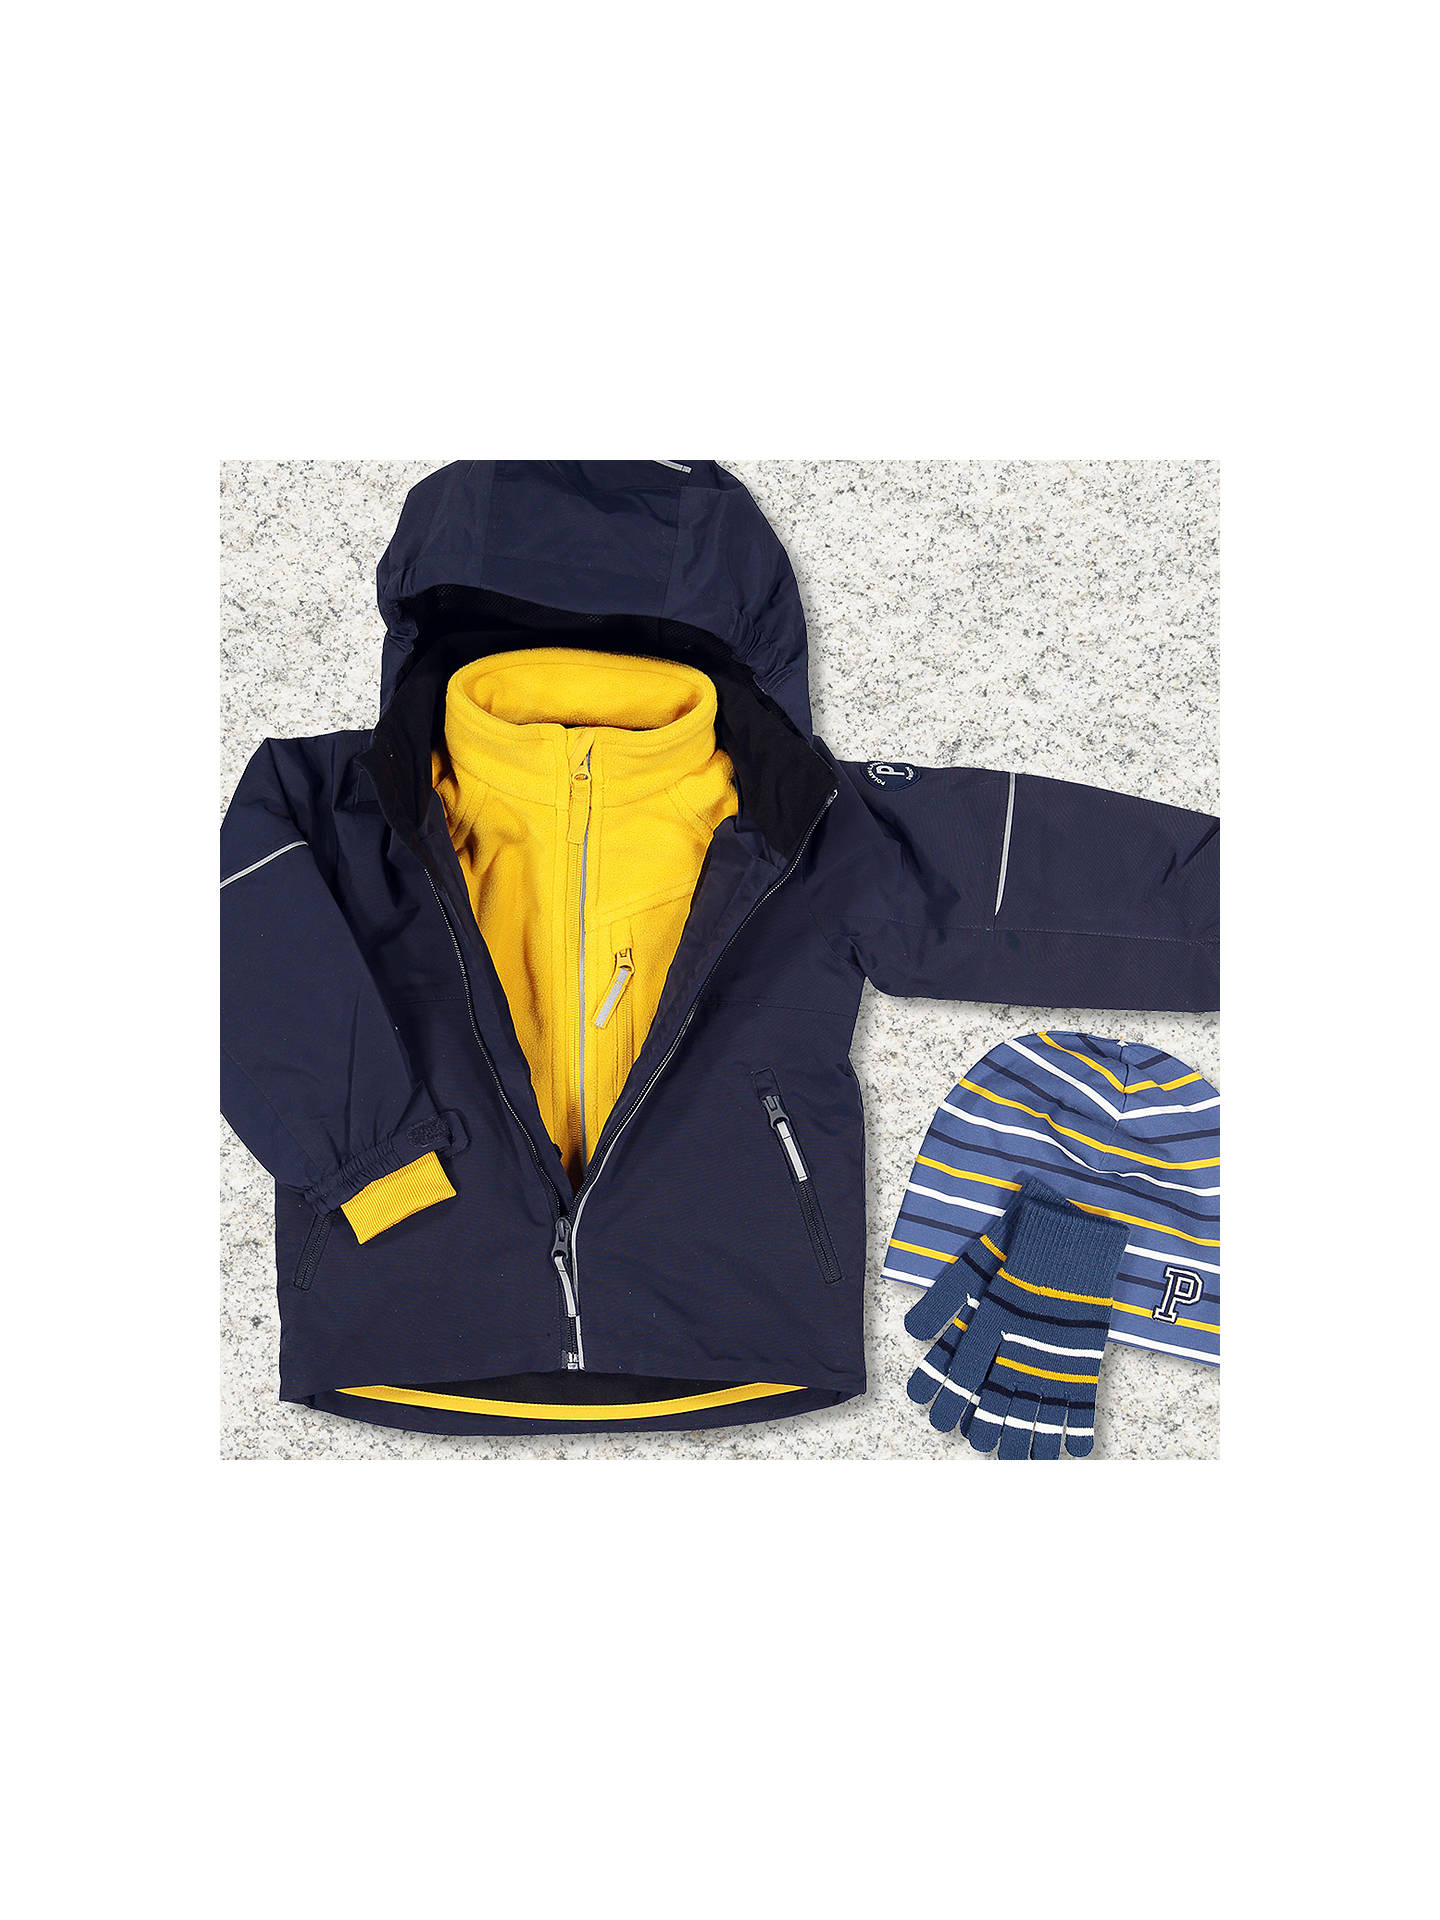 361021b4f Polarn O. Pyret Baby Waterproof Shell Coat